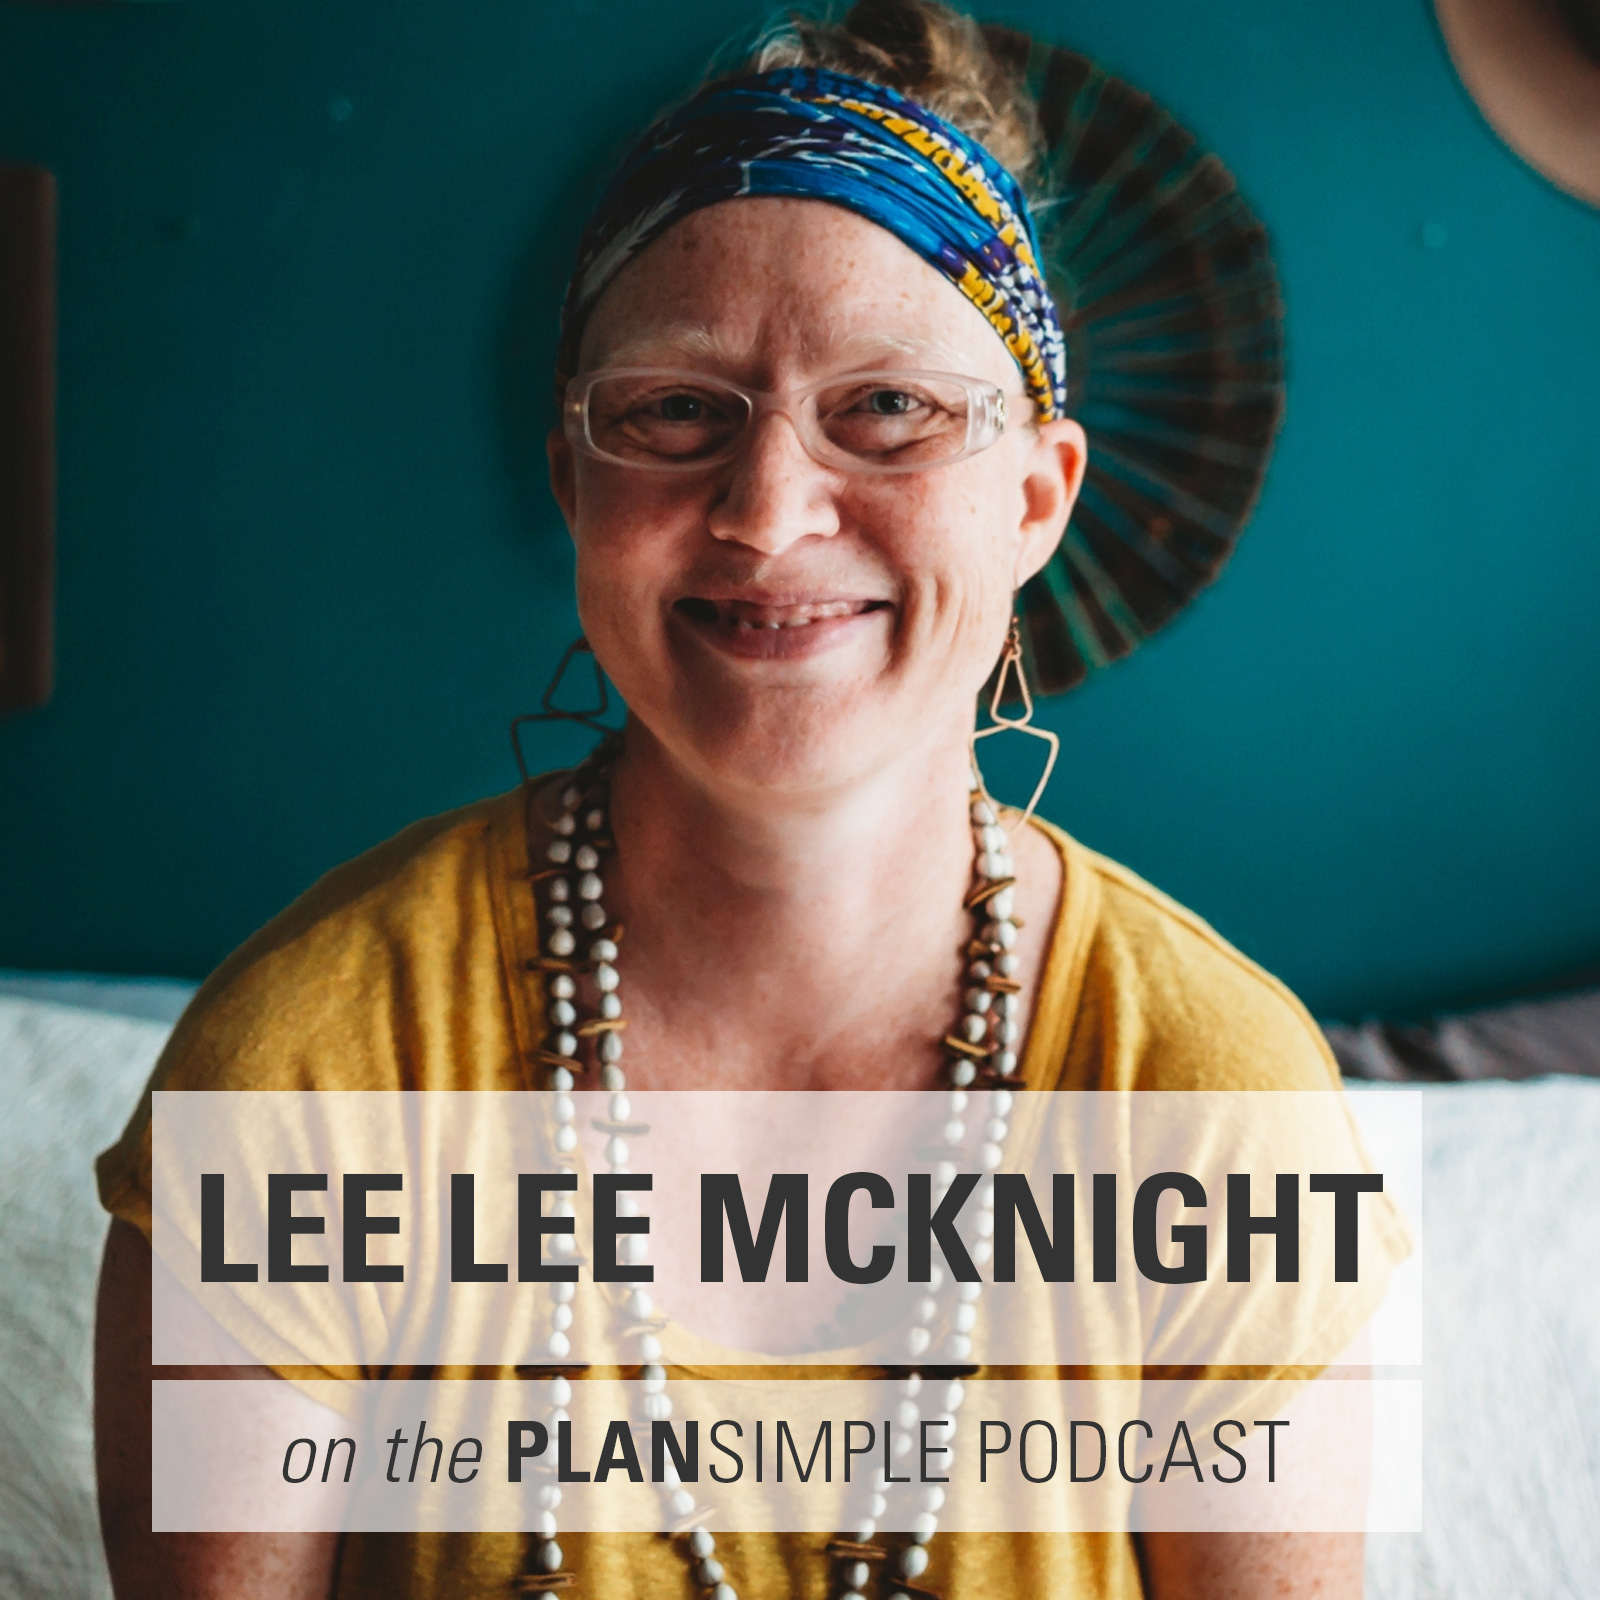 Get to Know Your Kids with Lee Lee McKnight